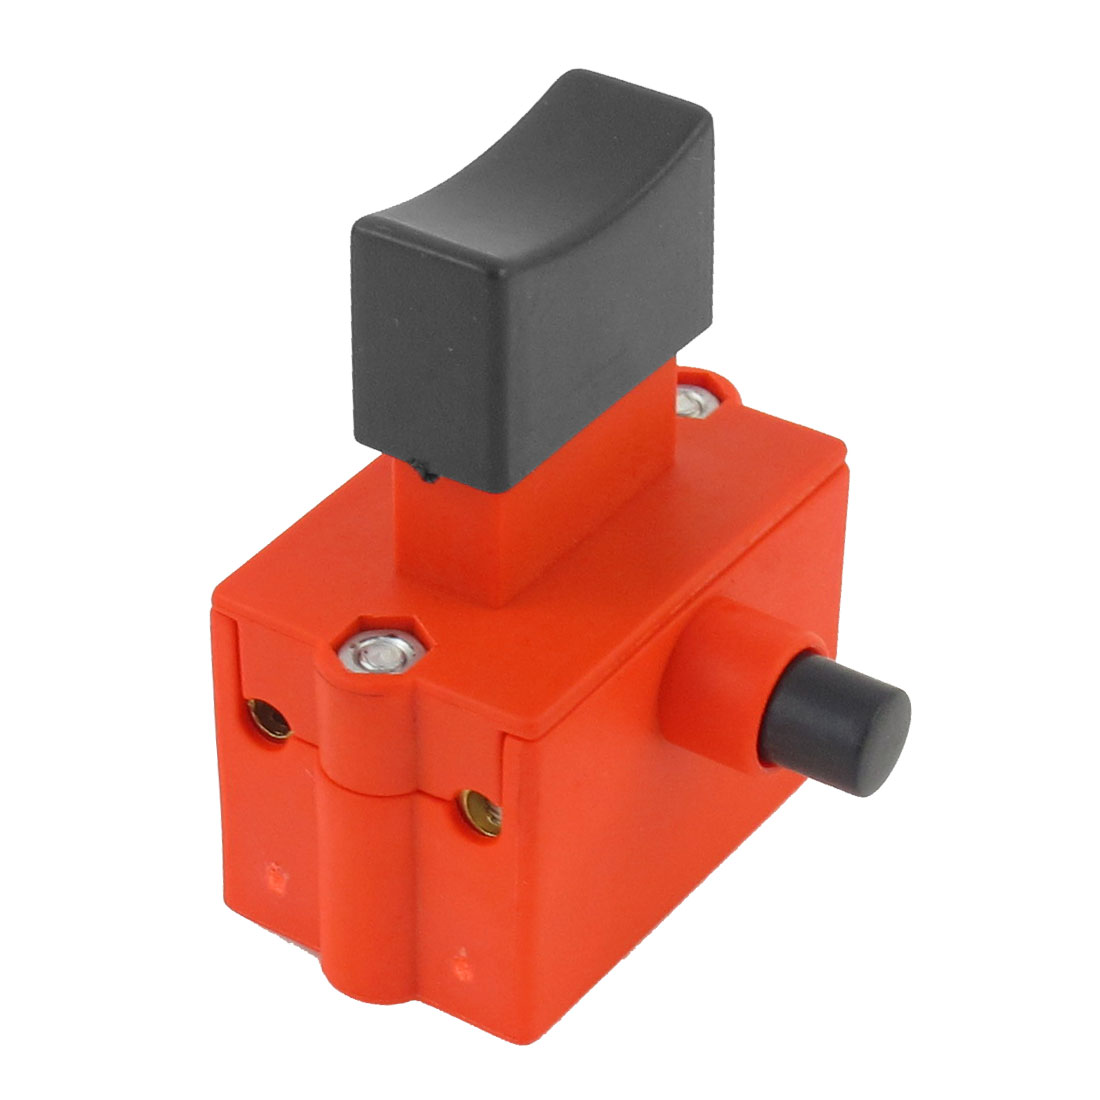 DPST 2NO AC250V/12A AC125V/20A 5E4 Trigger Switch for Electric Power Drill Tool